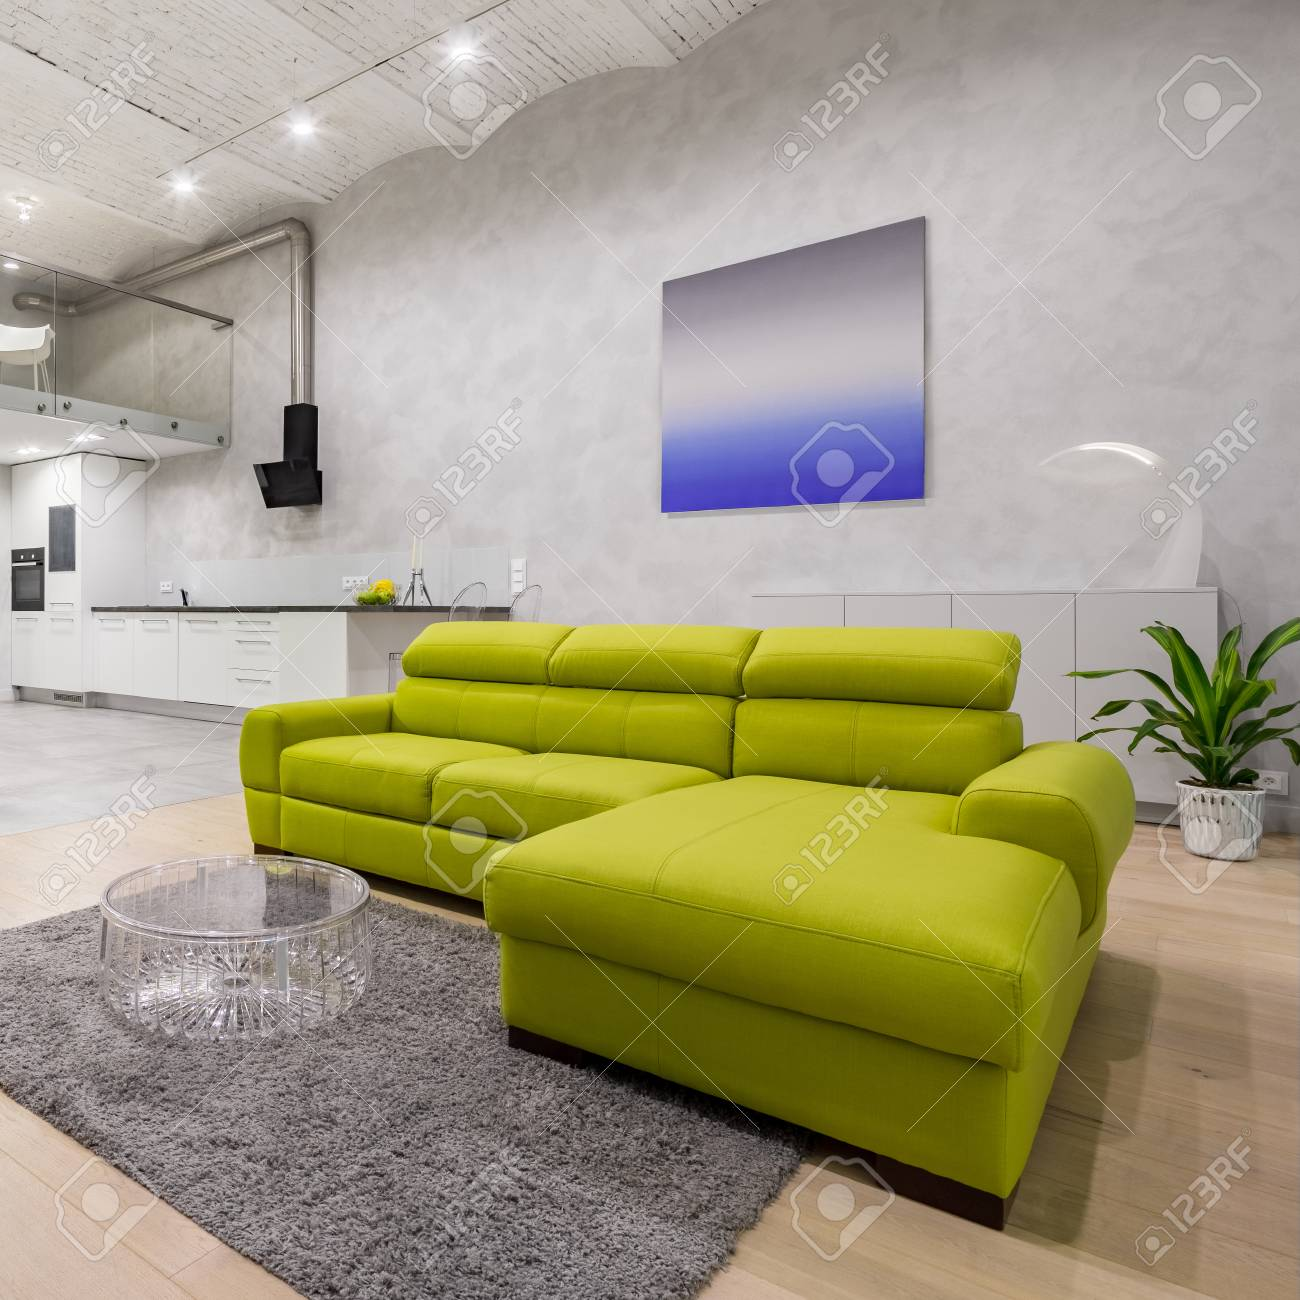 Loft apartment with modern green sofa and brick ceiling